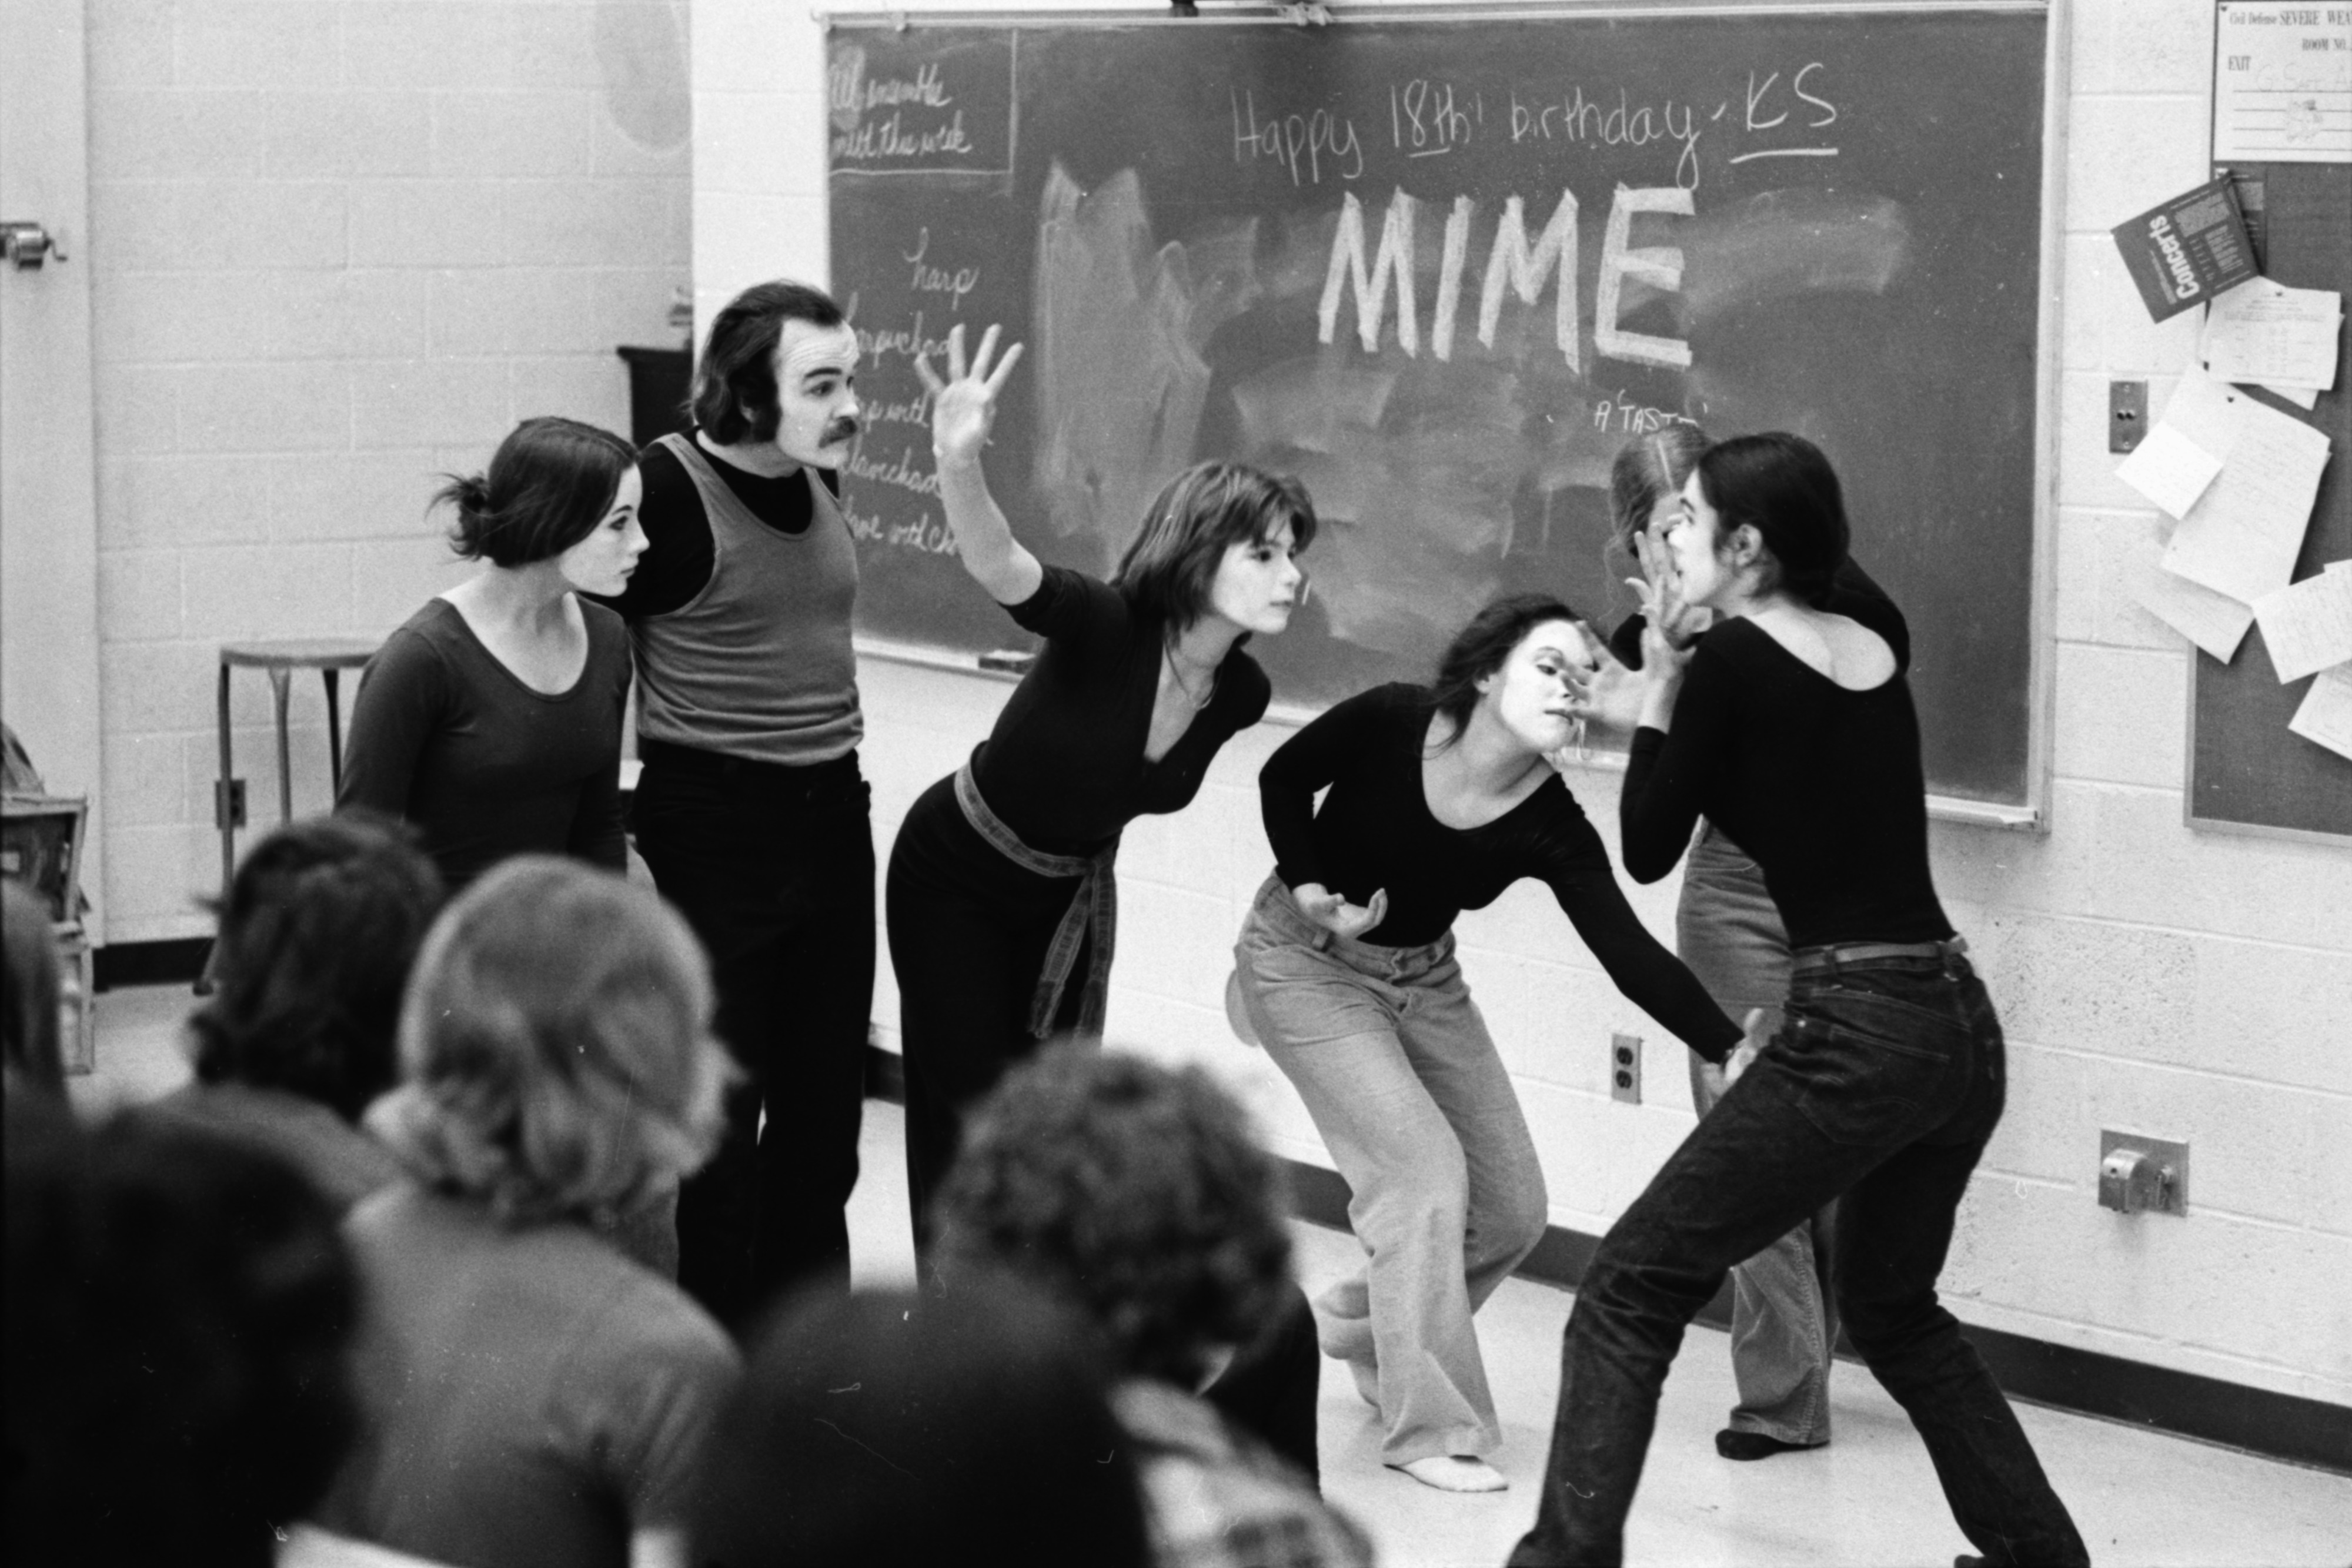 Mime Workshop at Third Annual Creative Arts Festival at Huron High School, March 1974 image